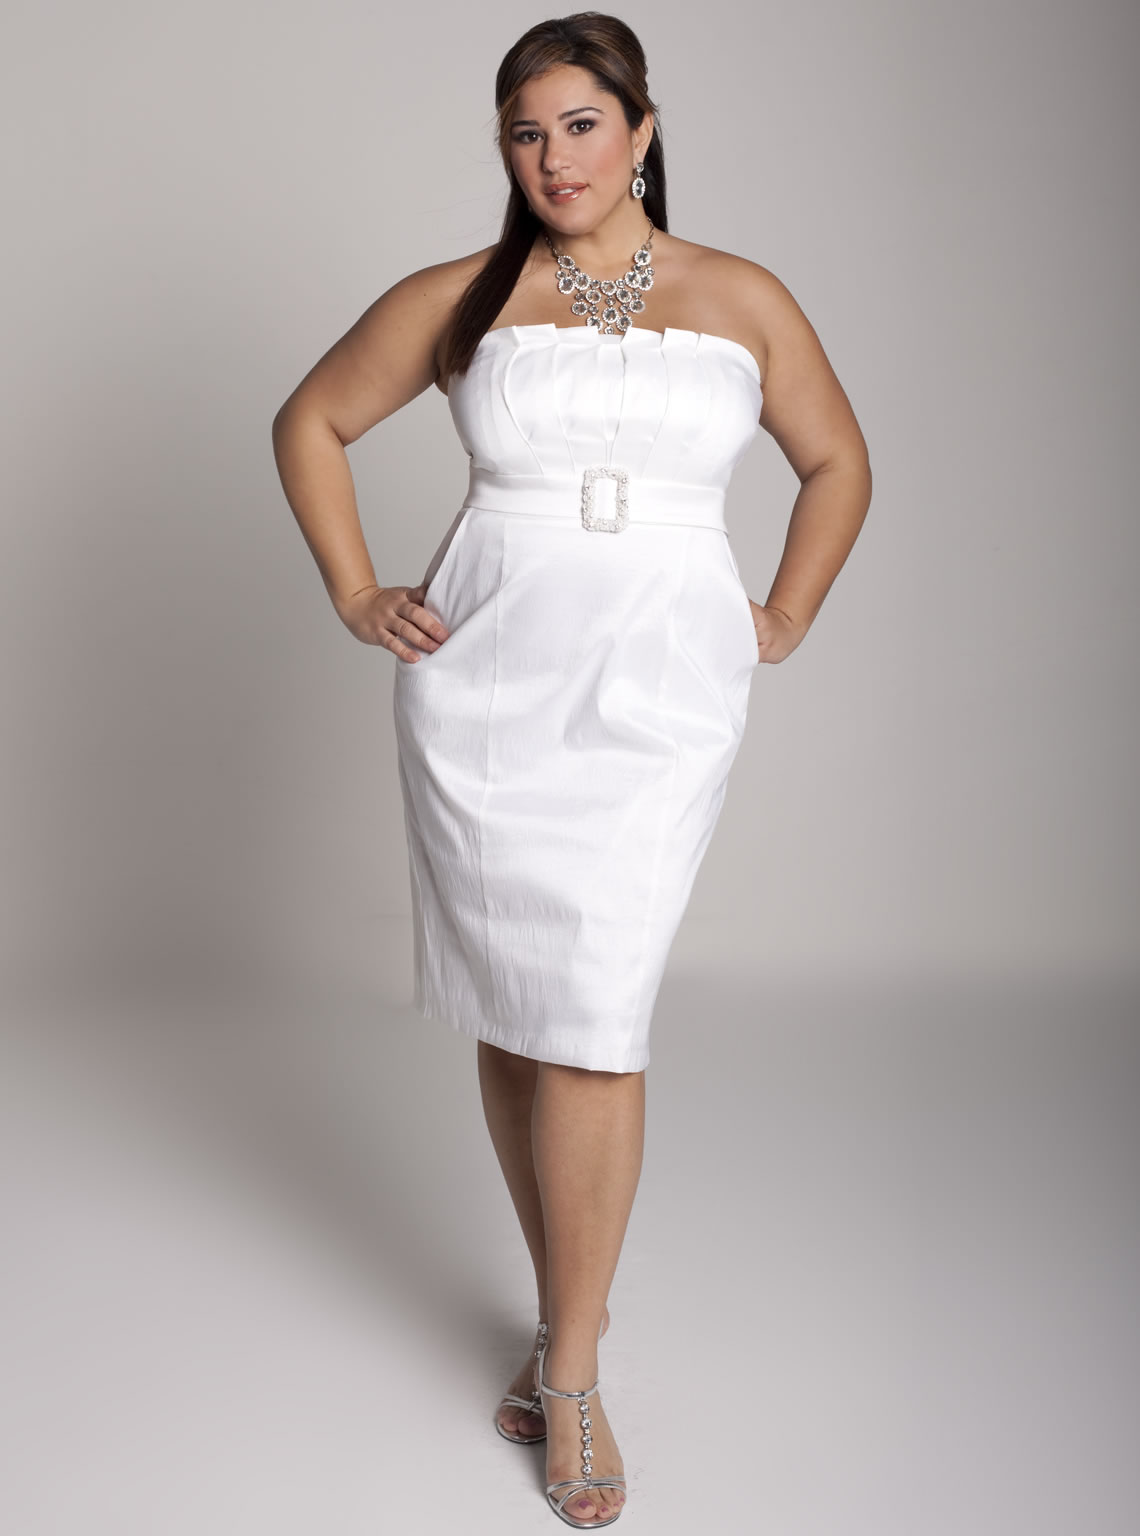 A casual wedding dress plus size